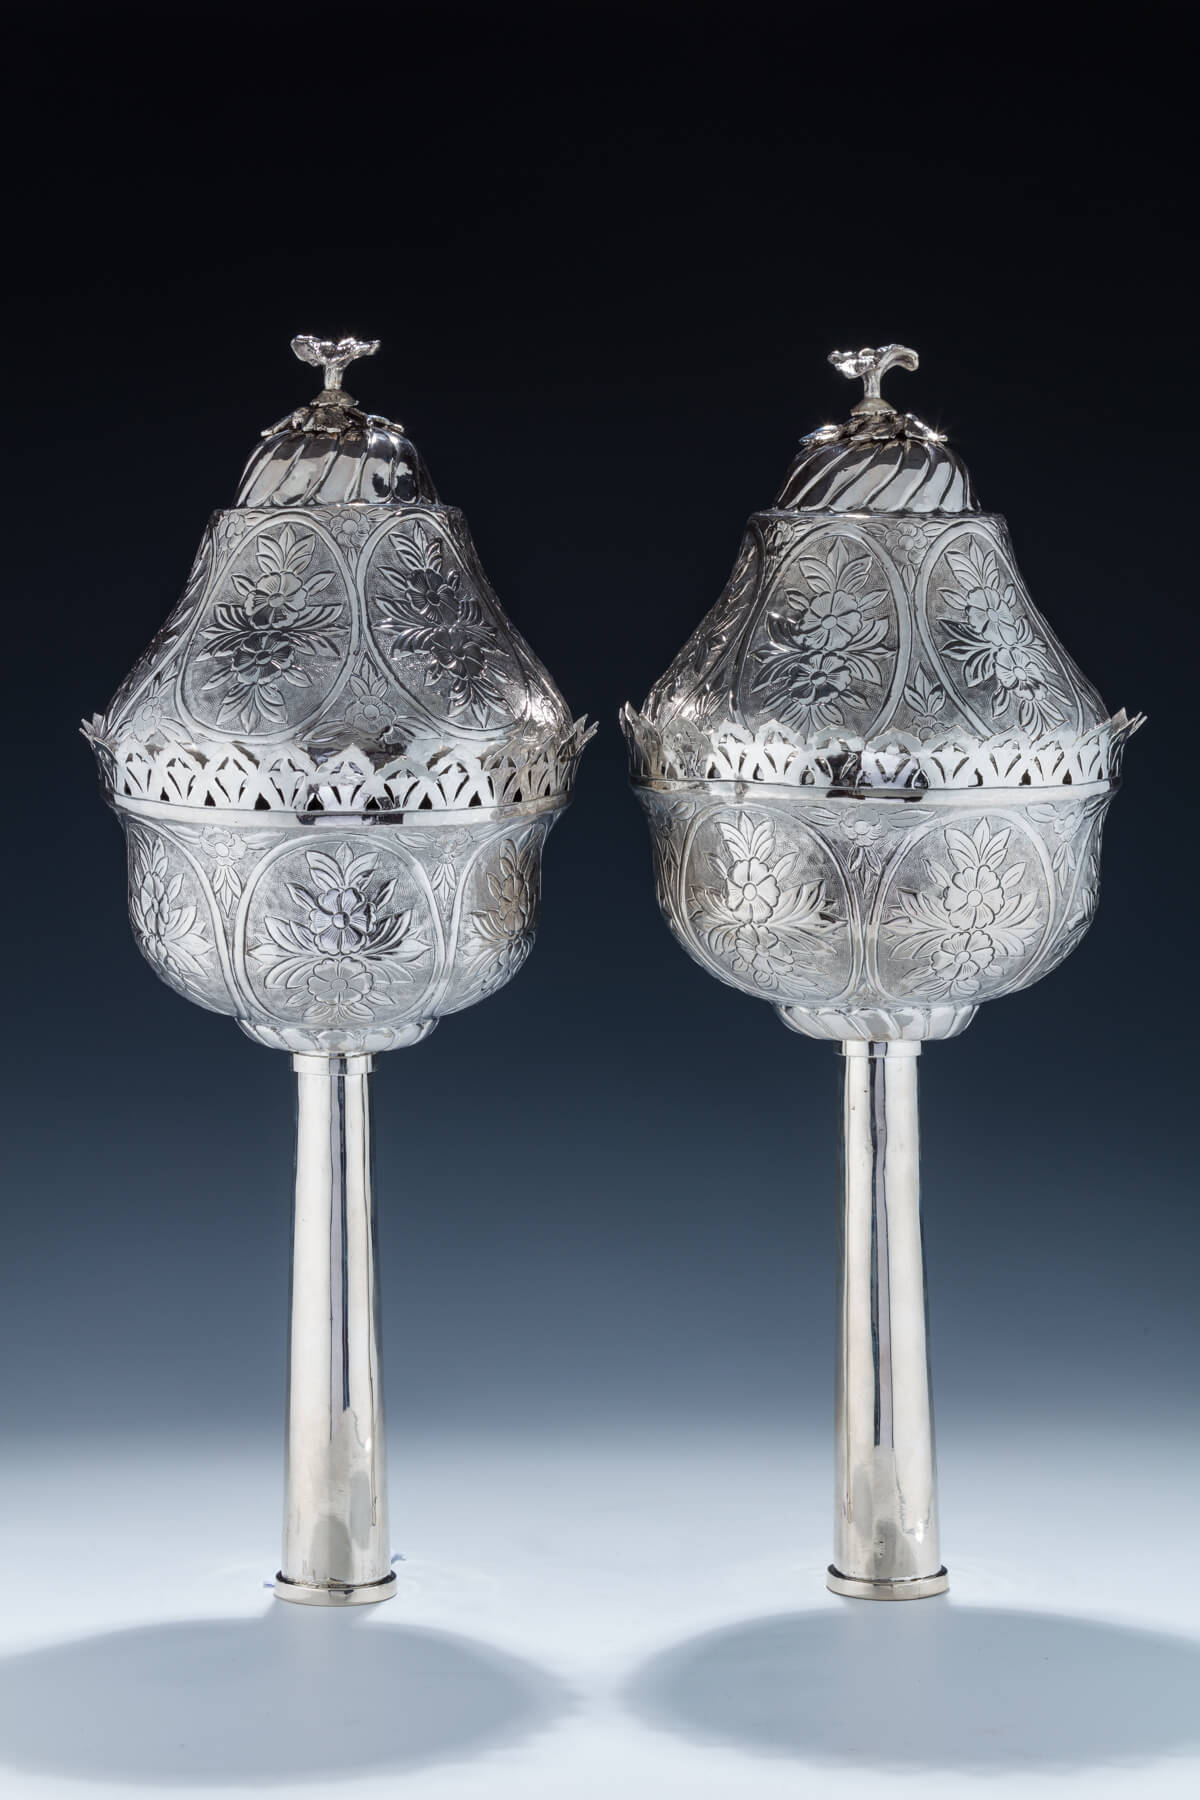 119. A Monumental Pair of Silver Torah Finials